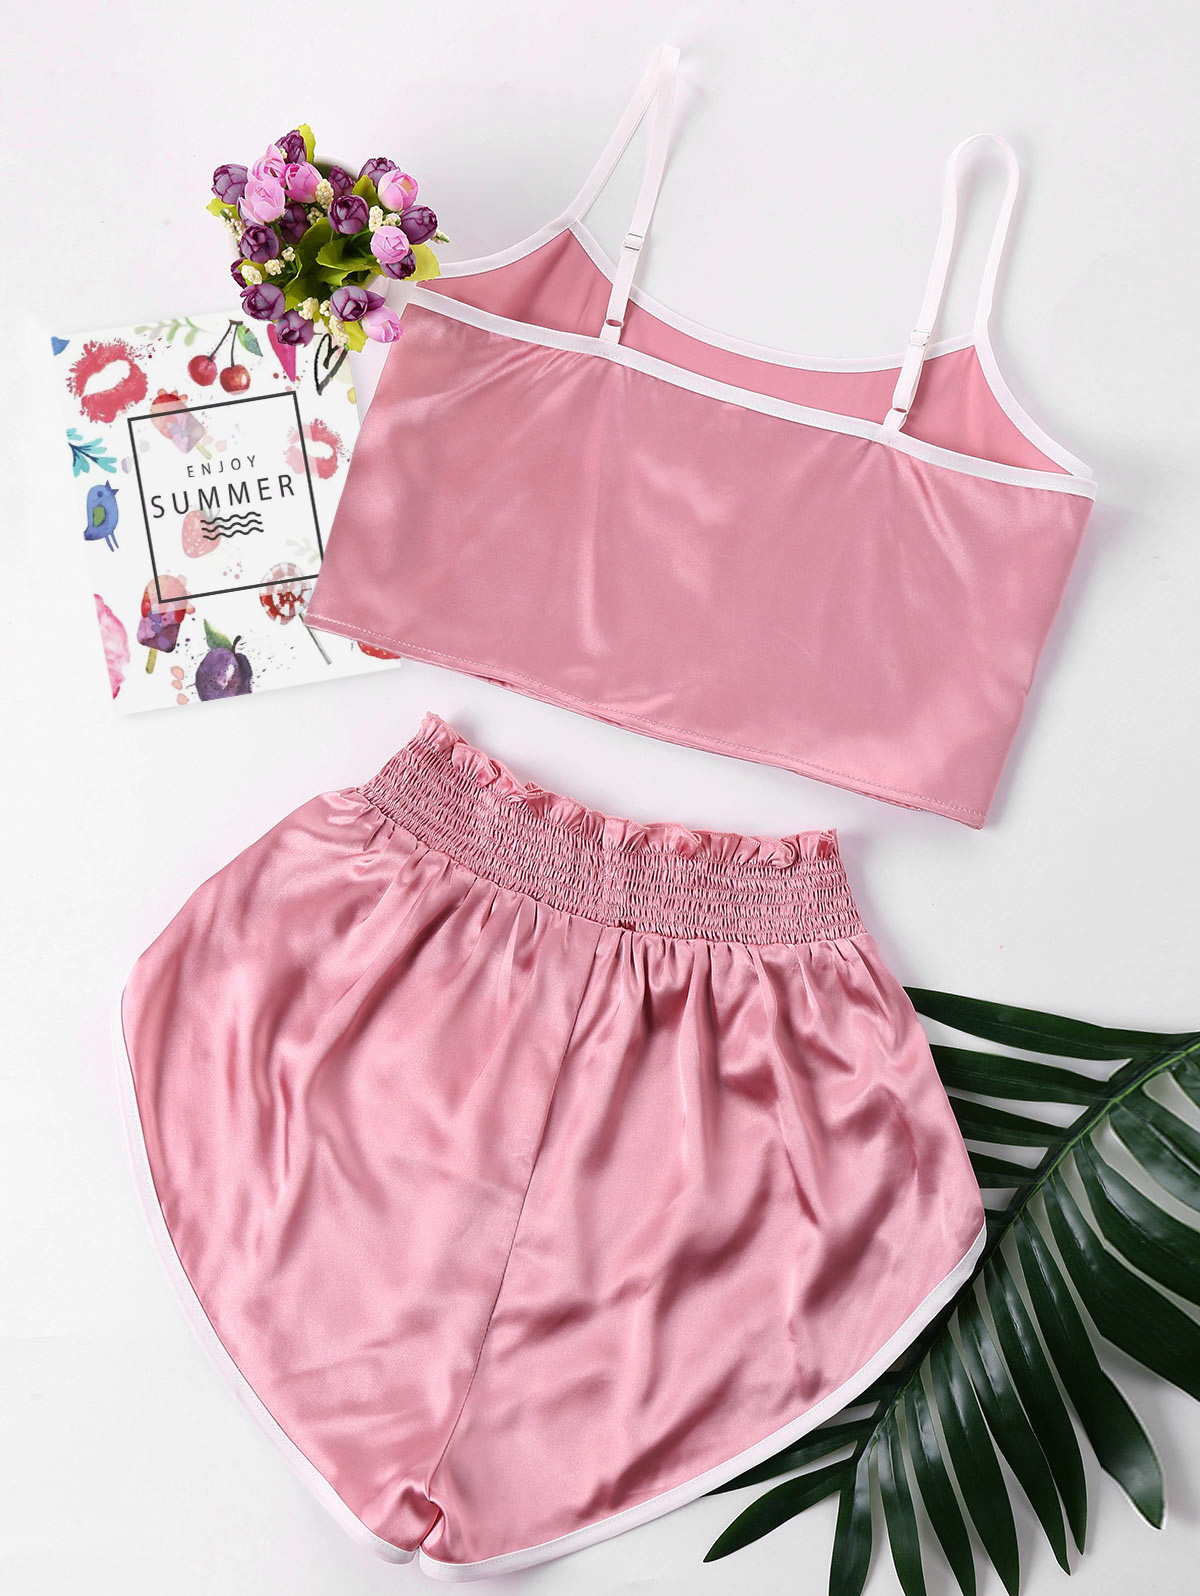 ZAN.STYLE High Cut Shorts Two Piece Set Color Patchwork Halter Strap Camis Cropped Top Ruffles Shorts Girl Beach Suit Sweet Pink 1